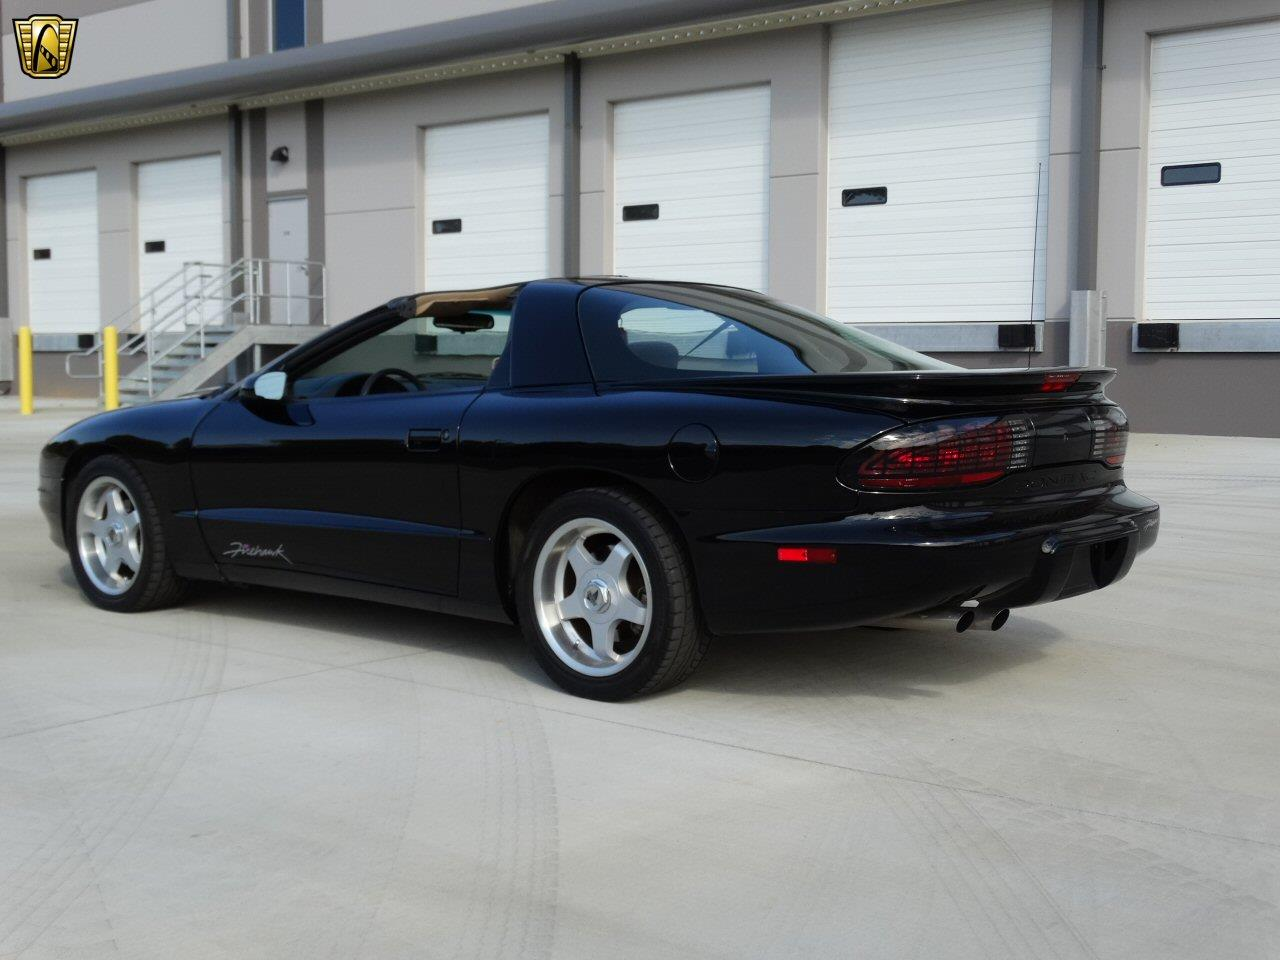 Large Picture of '94 Pontiac Firebird - $20,995.00 Offered by Gateway Classic Cars - Atlanta - KF4C